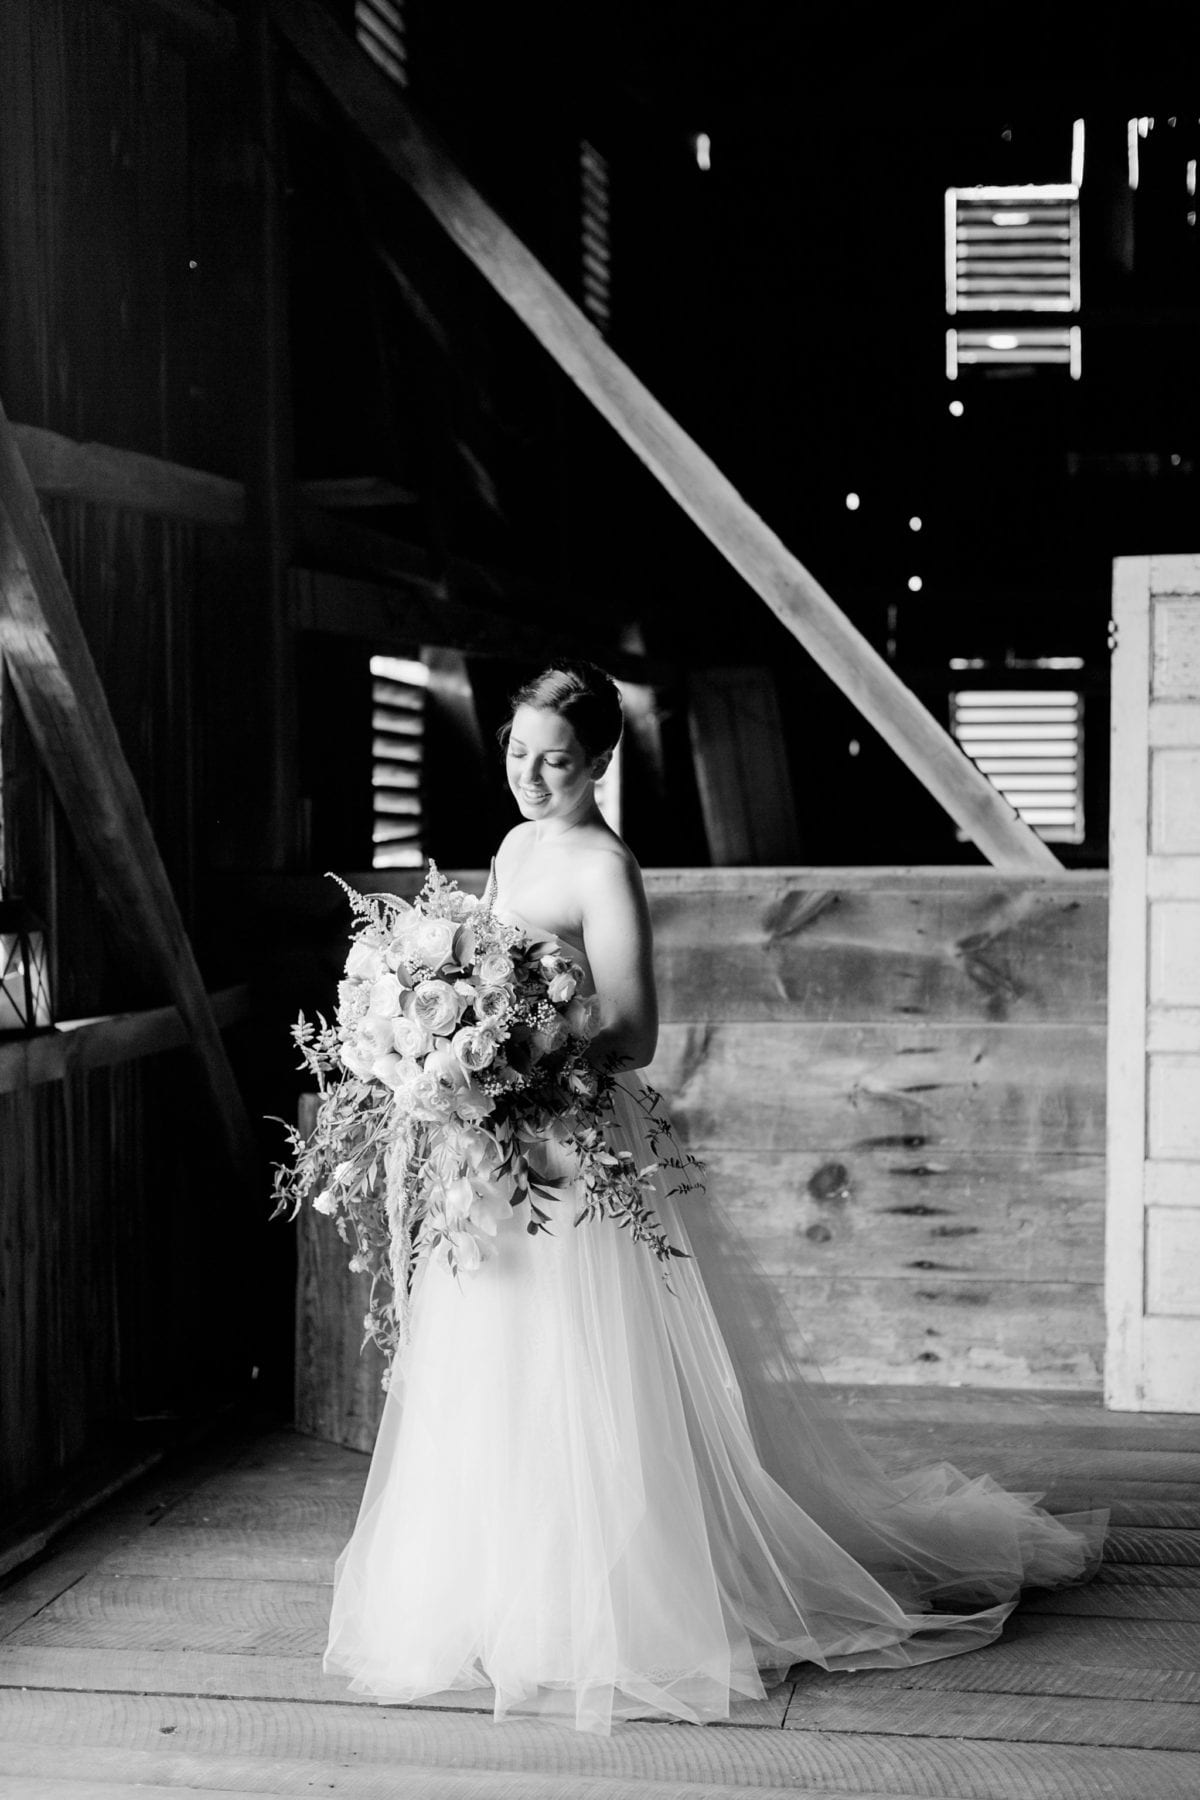 Rocklands Farm Wedding Virginia Wedding Photographer Megan Kelsey Photography Jessica & Jason-20.jpg